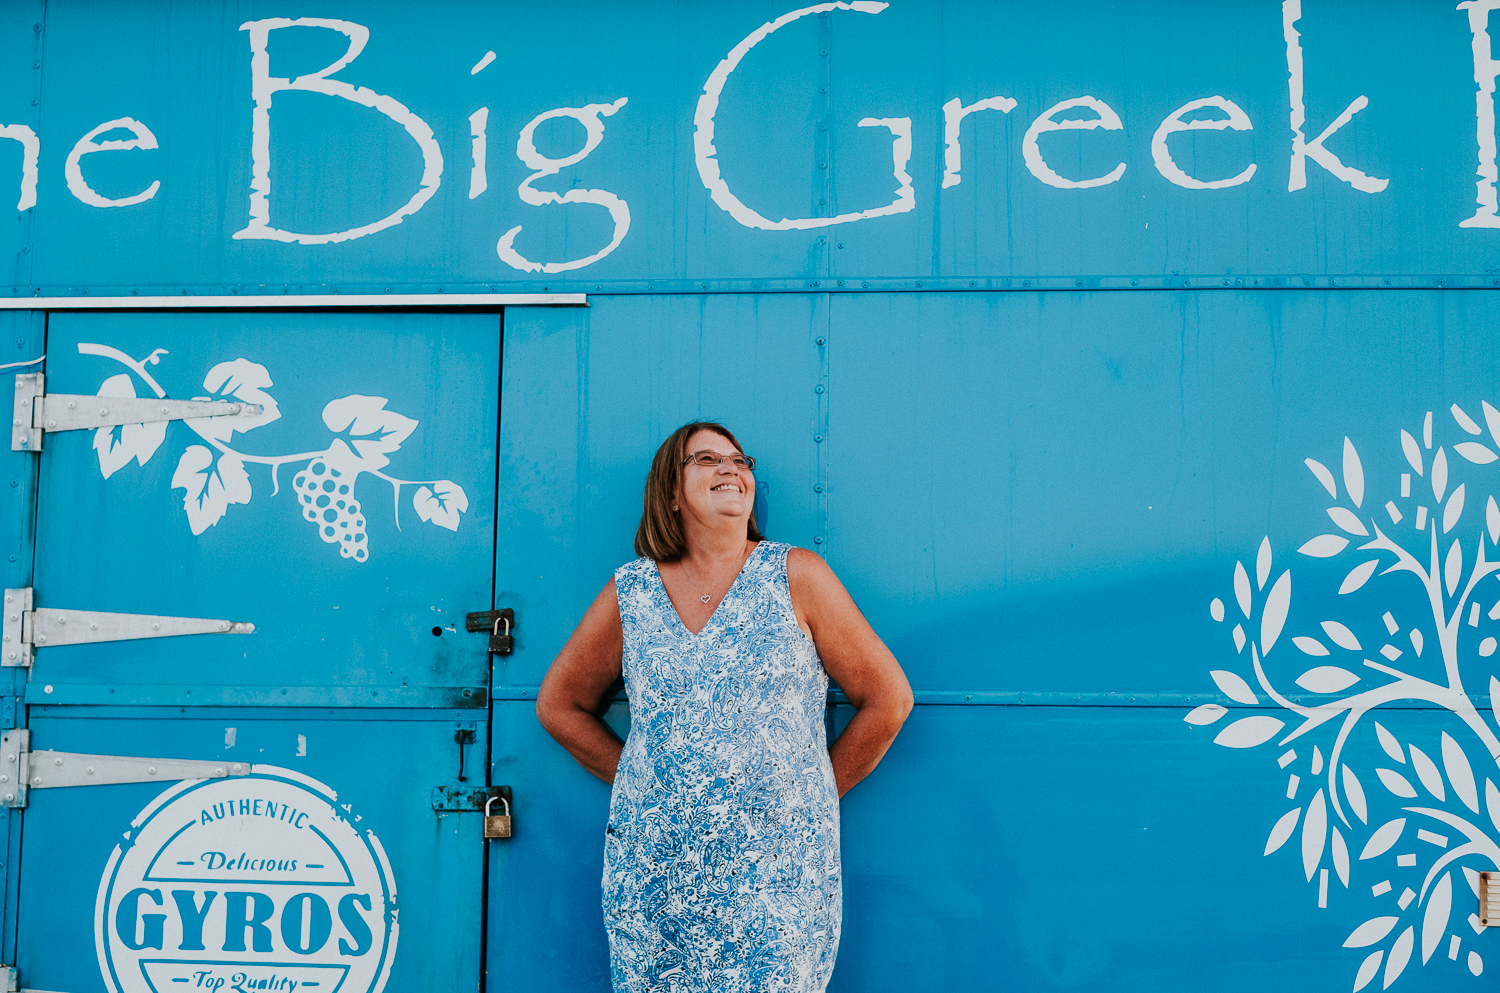 middle aged woman in blue and white dress posing with blue big greek bus folkestone harbour arm